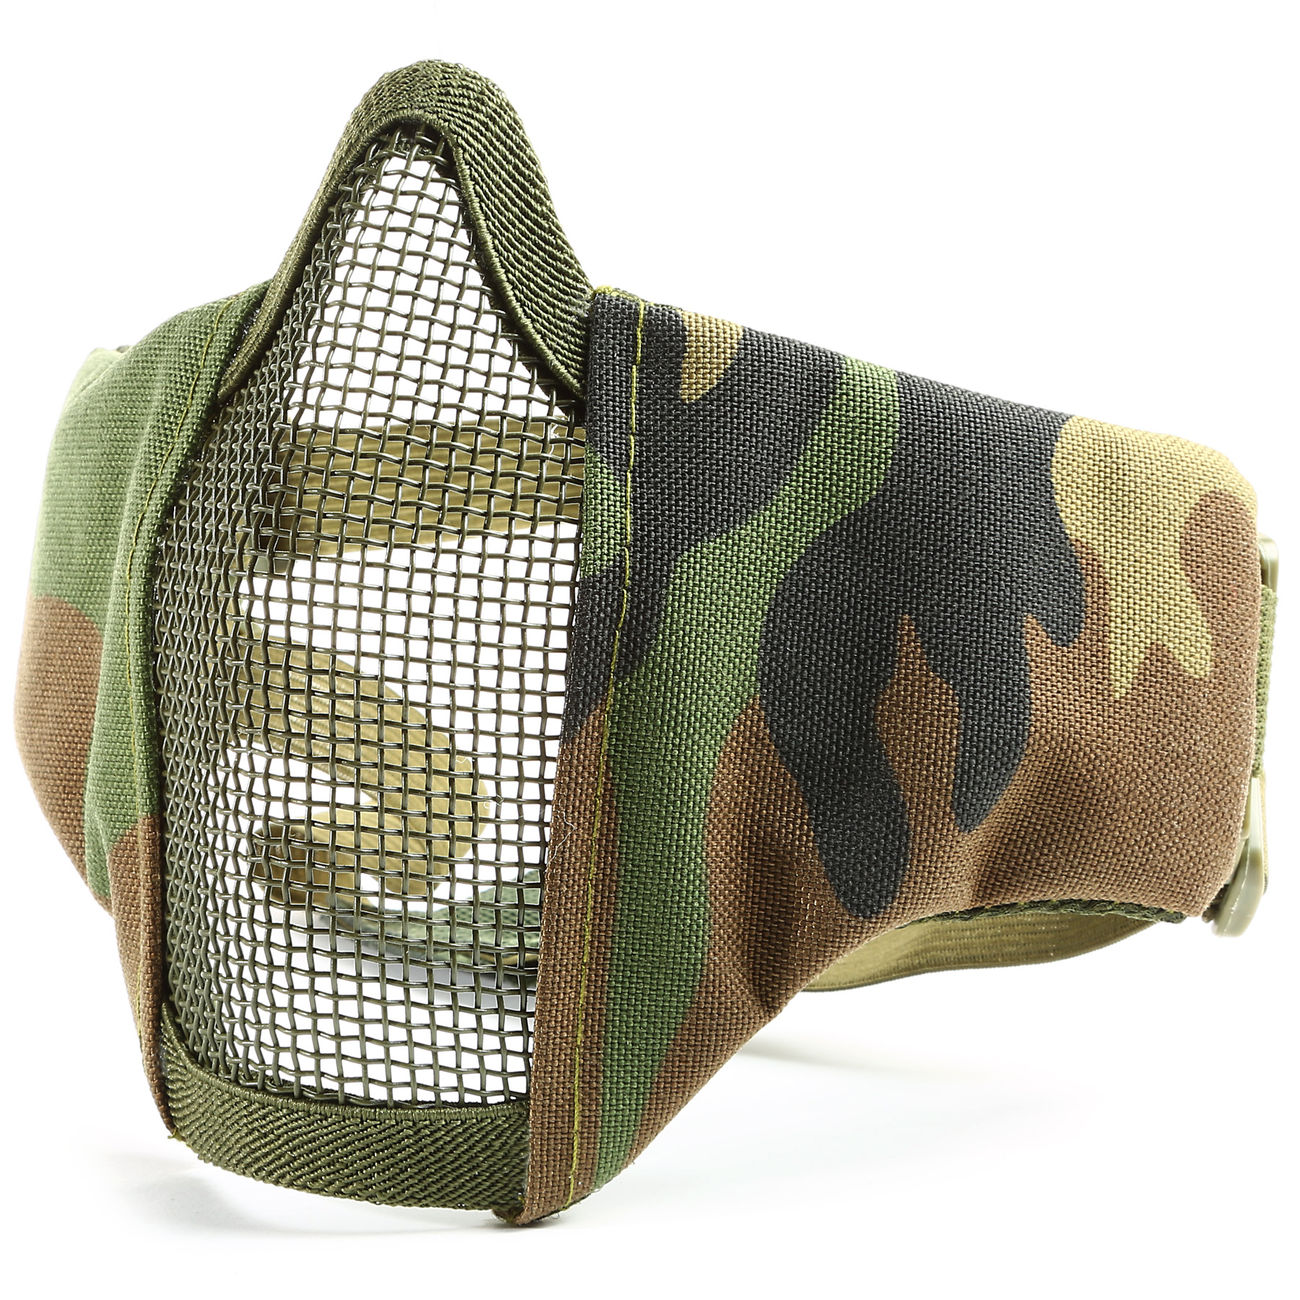 101 INC. Airsoft Gittermaske woodland 2